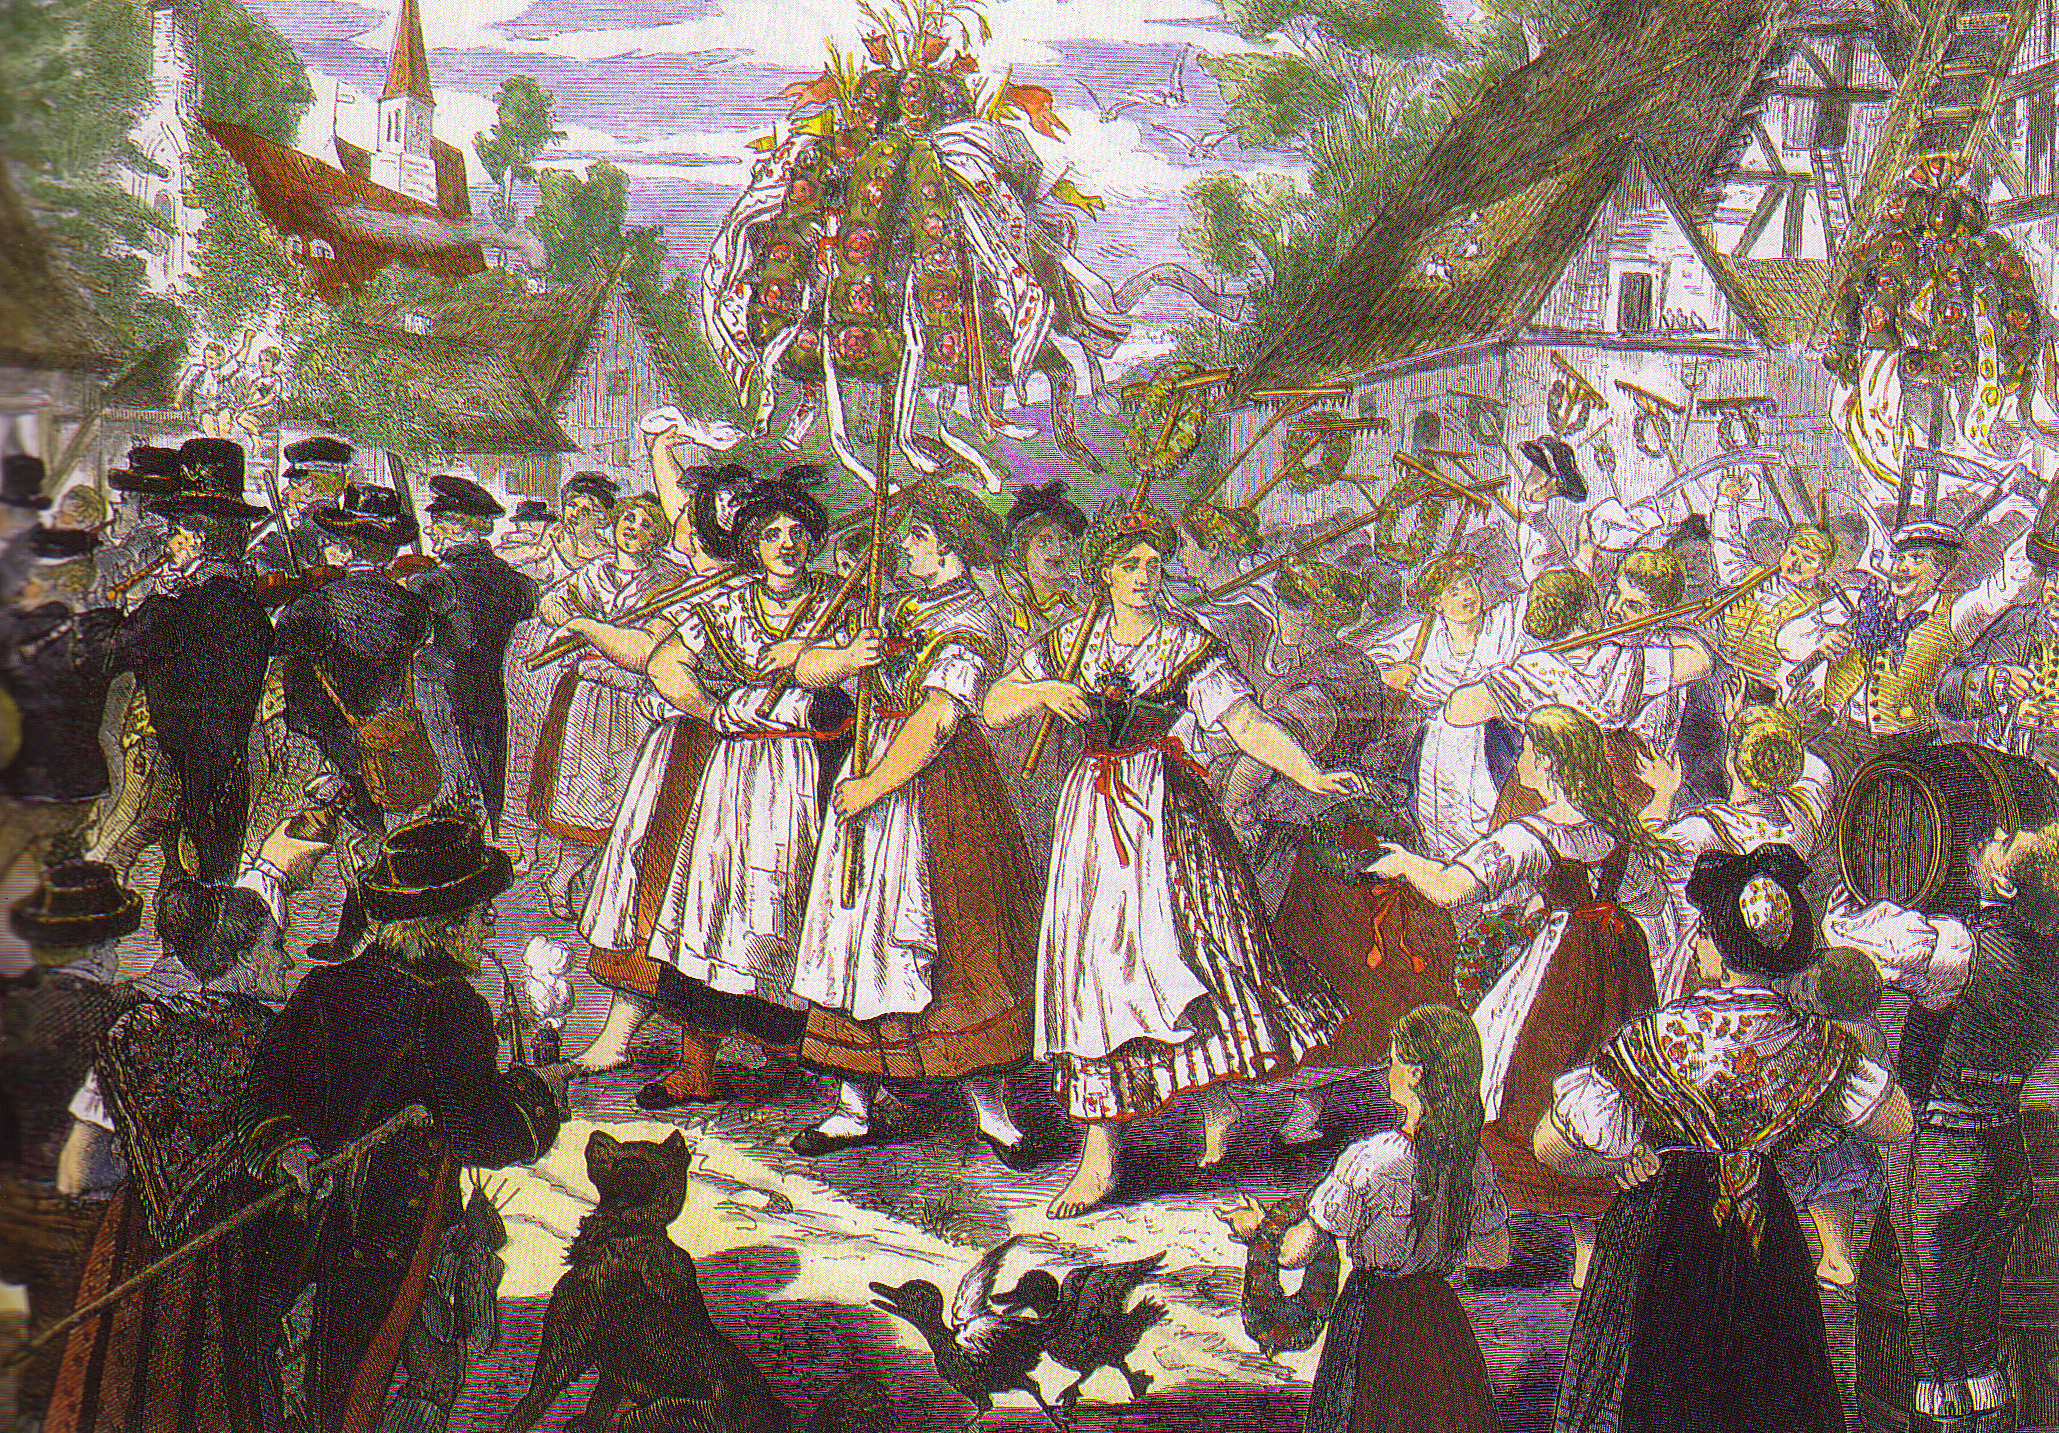 Painting of Czech Harvest Festival celebrants